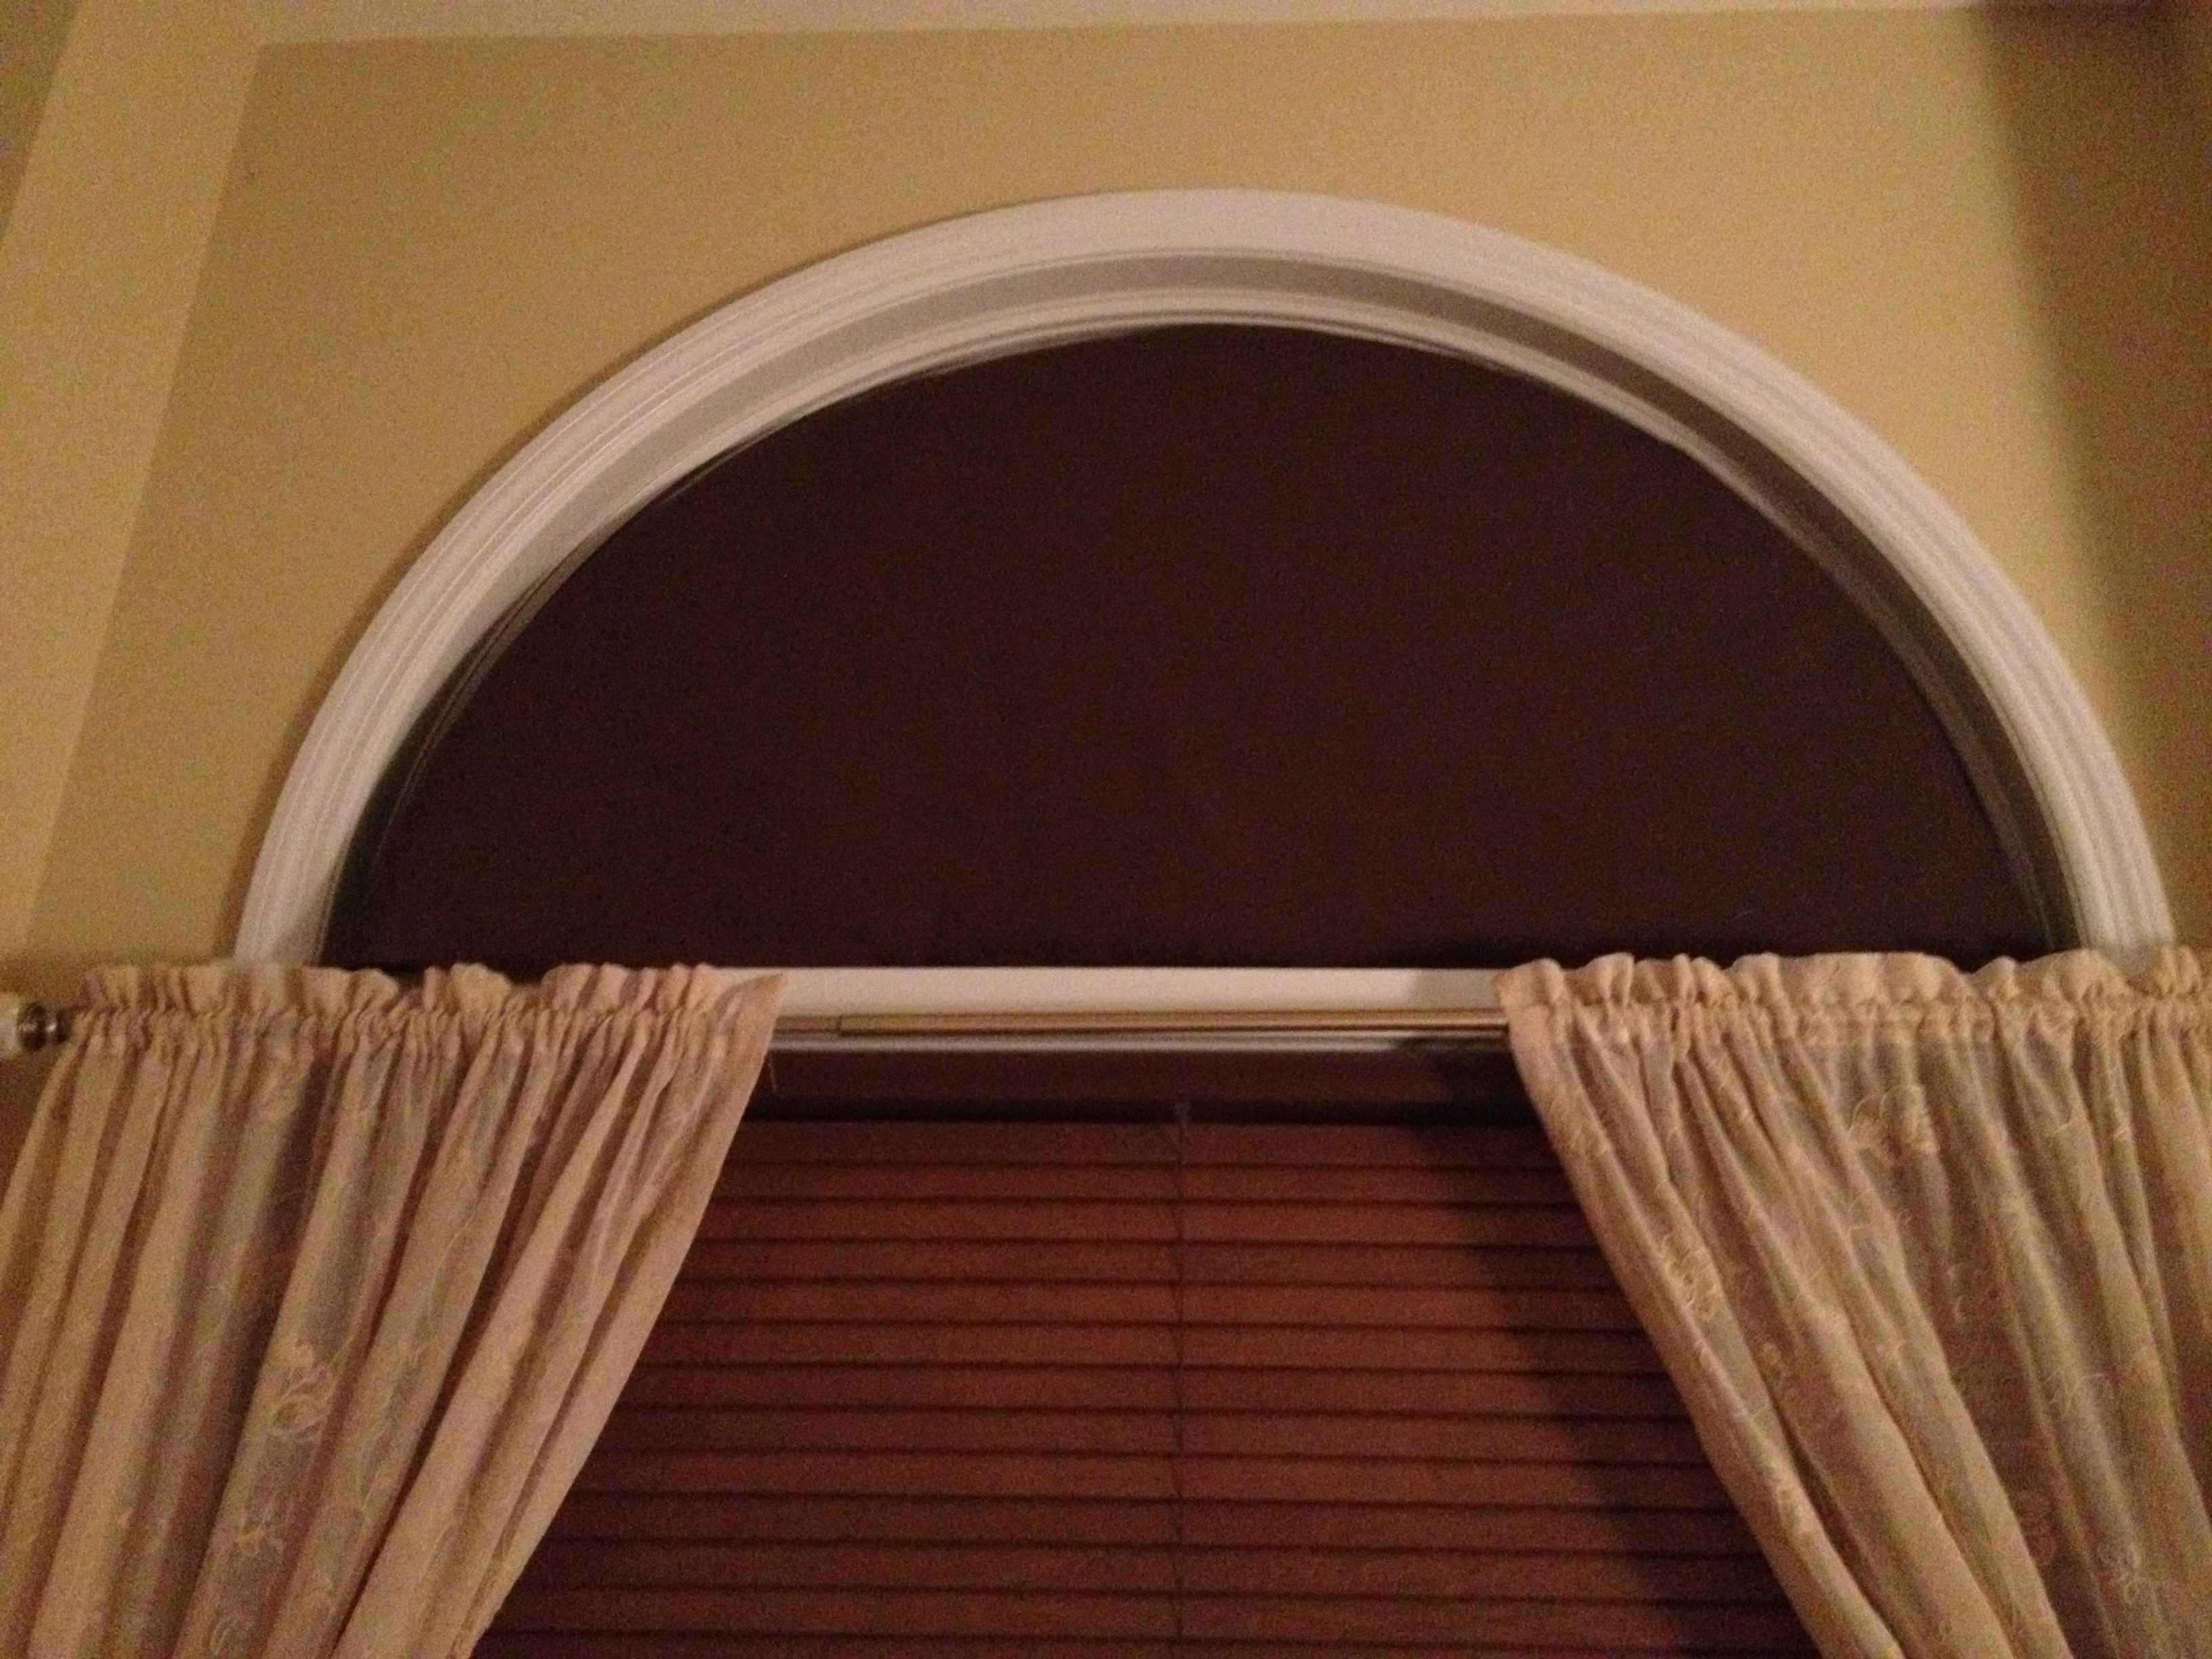 Home Made Arch Window Covering To Stop The Sun From Coming Into The Bedroom In The